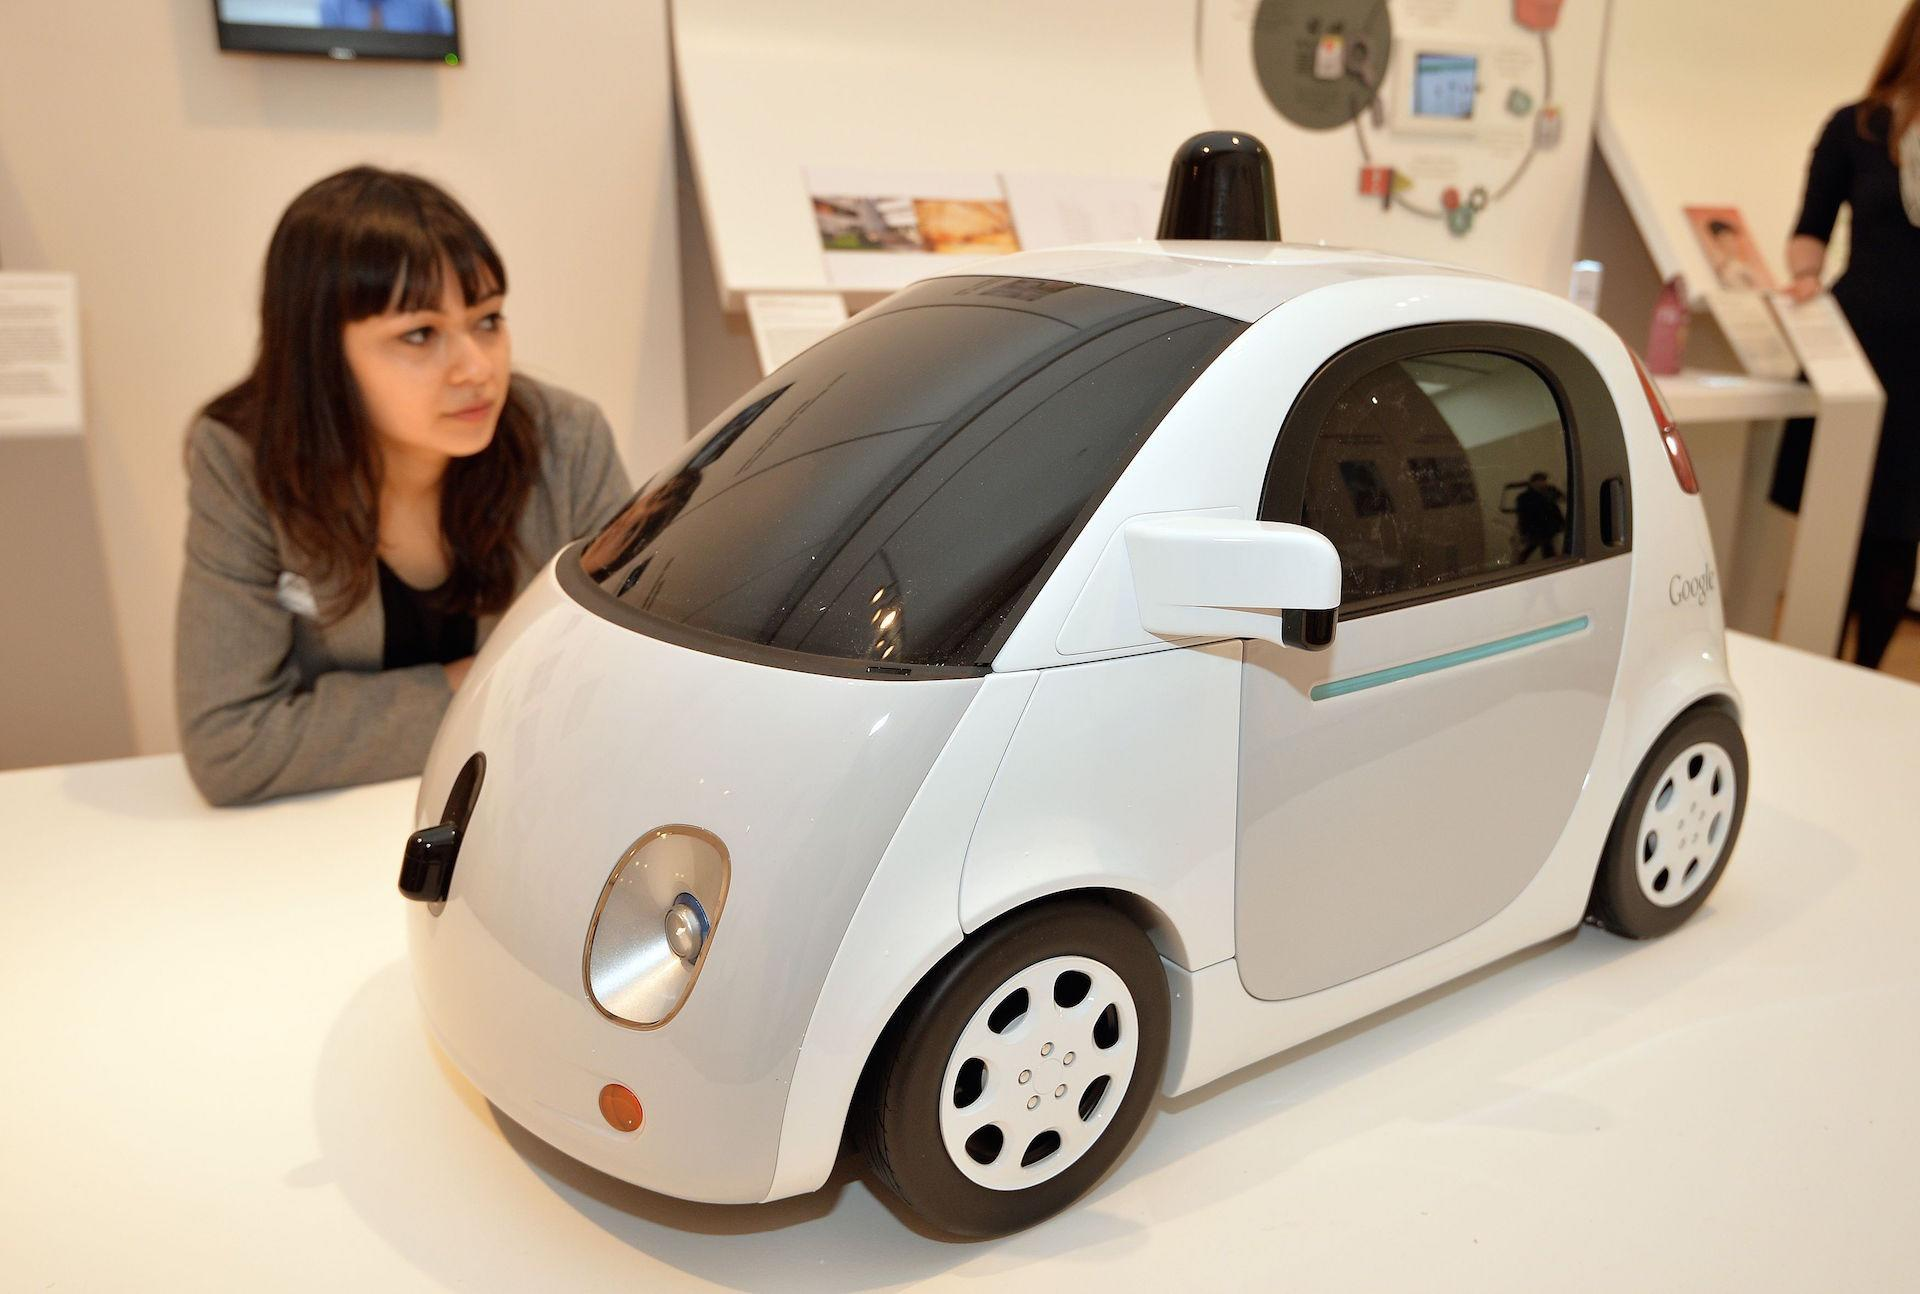 Want to help manufacture self-driving cars? Google is hiring.